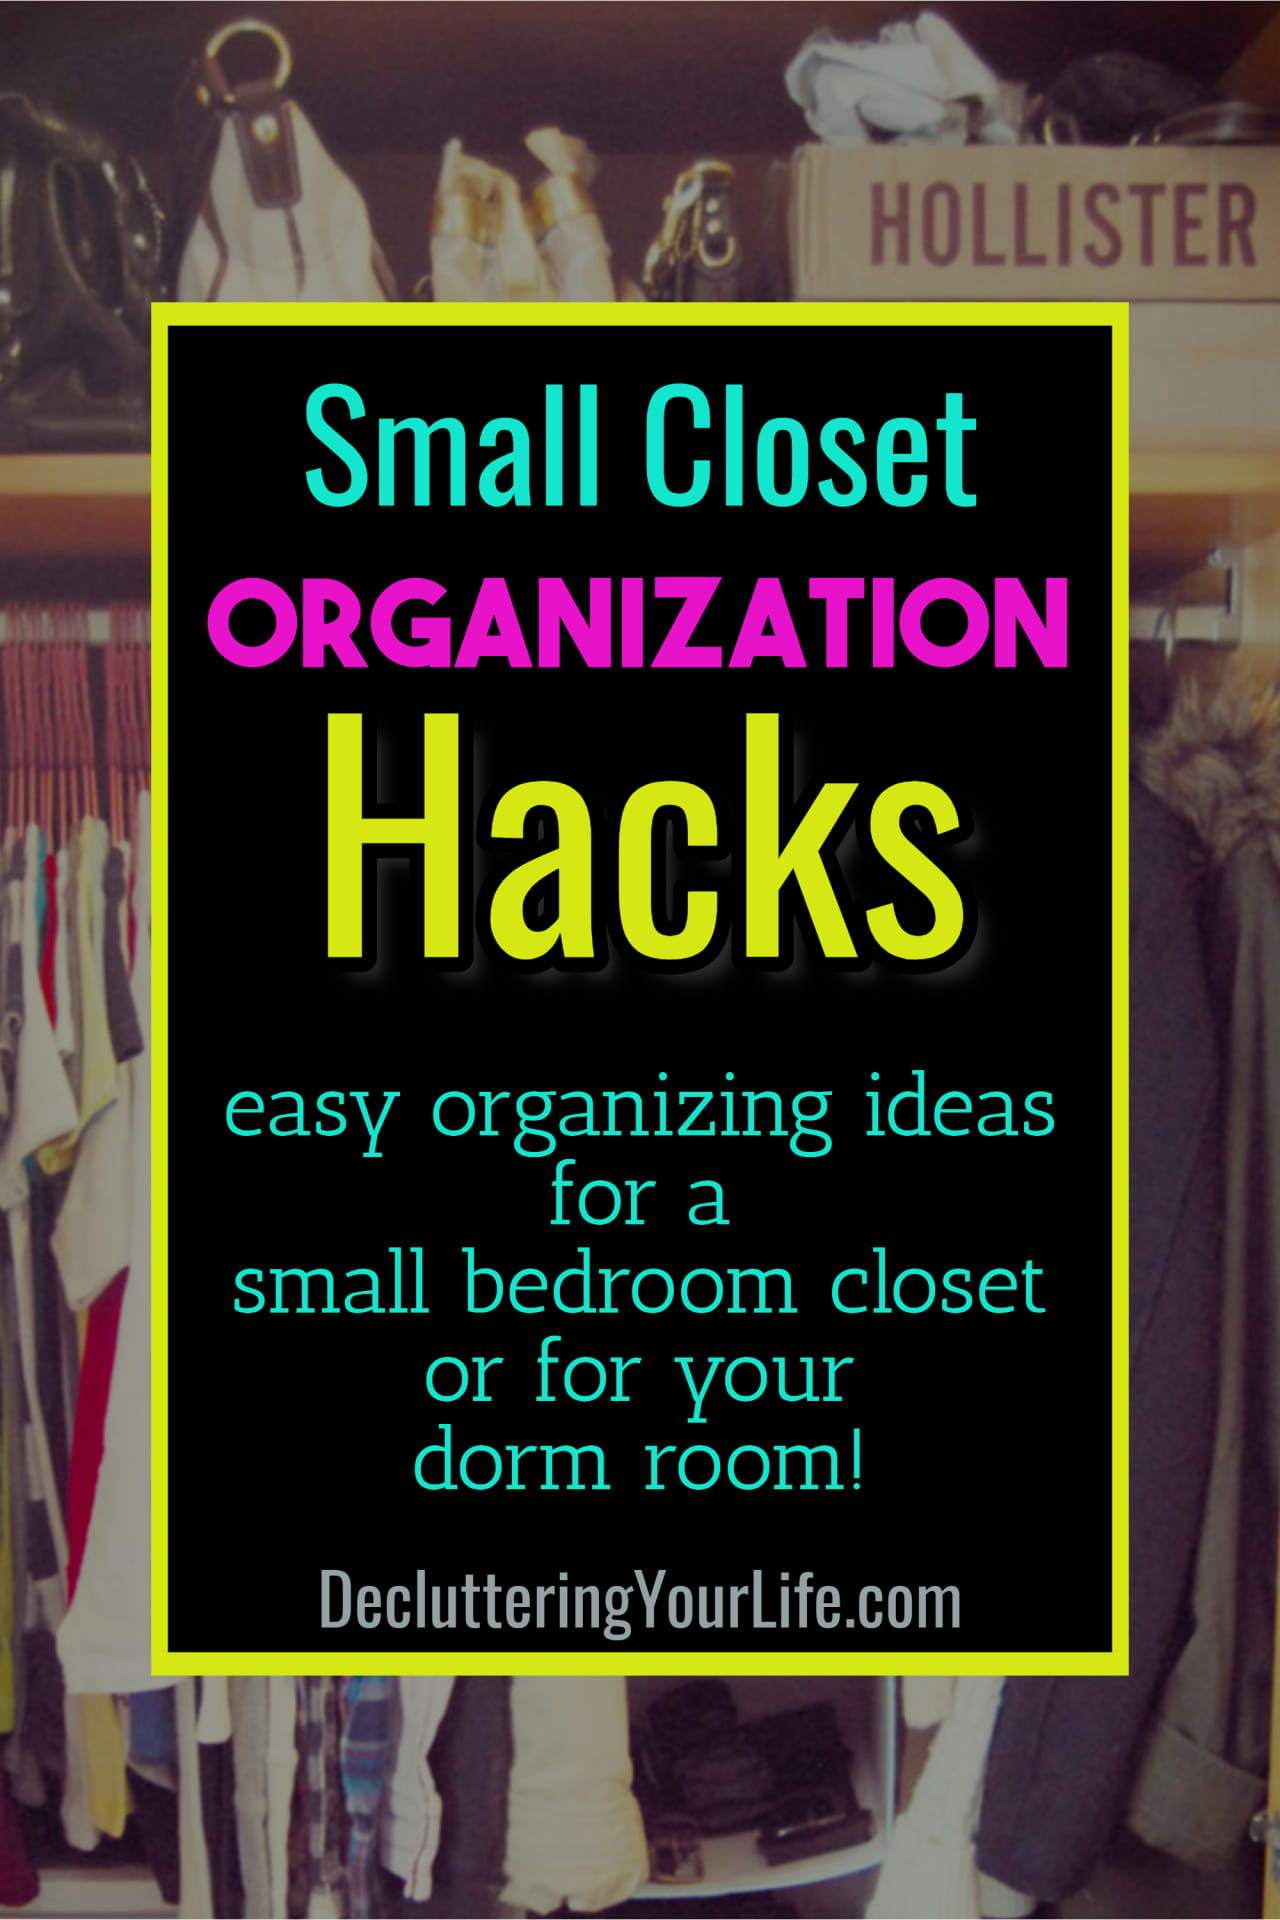 Space Saving Closet Ideas! How to organize a dorm room closet or small bedroom closet.  These dorm room space saving ideas are brilliant dorm organization hacks and college form storage hacks.  Try these creative storage ideas for dorm rooms and dorm room tips and tricks - they work!